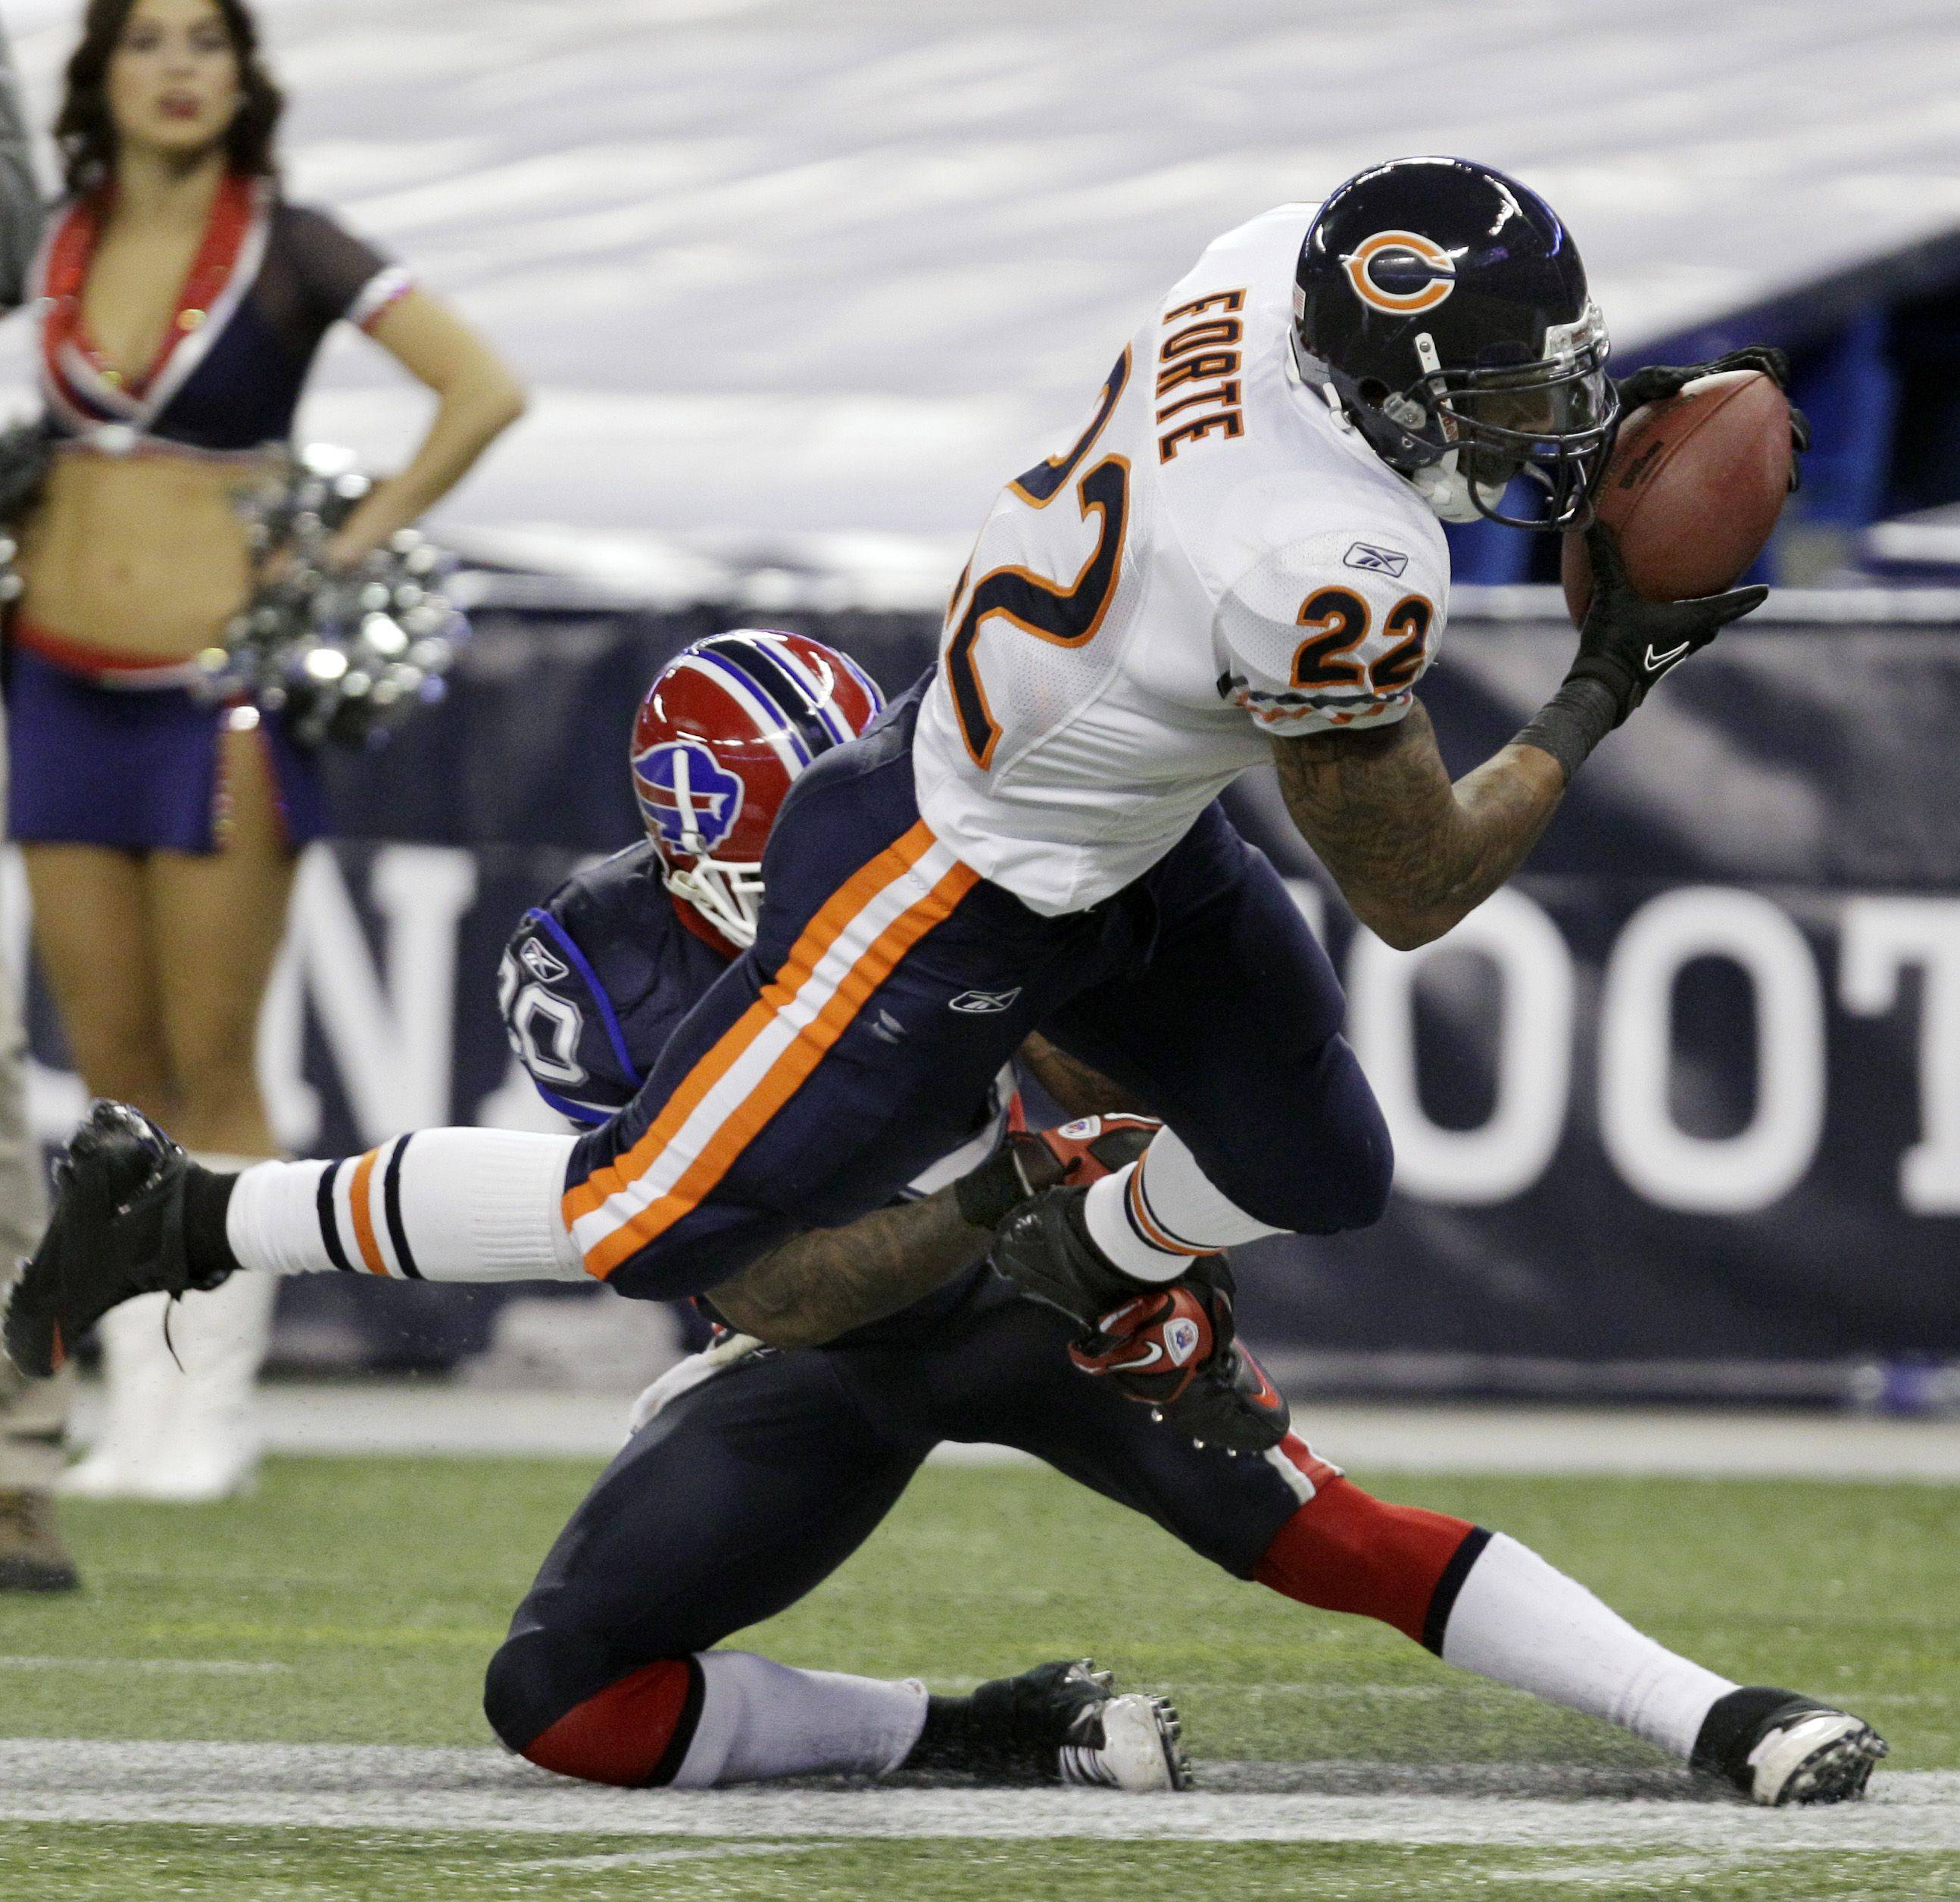 Chicago Bears' Matt Forte runs under pressure from Buffalo Bills' Donte Whitner during the second half of an NFL football game.